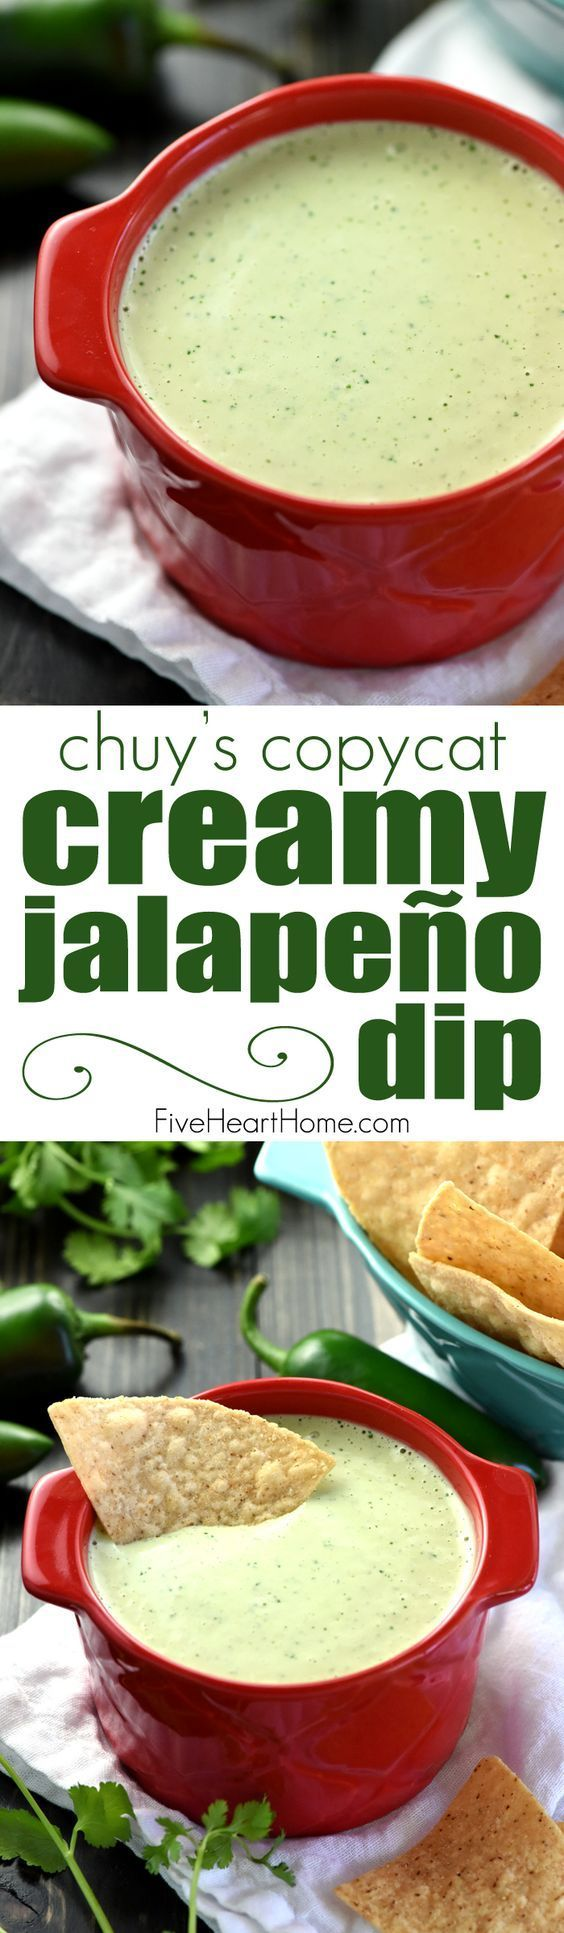 Creamy Jalapeño Dip ~ a base of homemade ranch dressing is flavored with fresh jalapeños, cilantro, and tomatillo salsa in this addictive copycat recipe of the popular appetizer at Chuy's! | http://FiveHeartHome.com